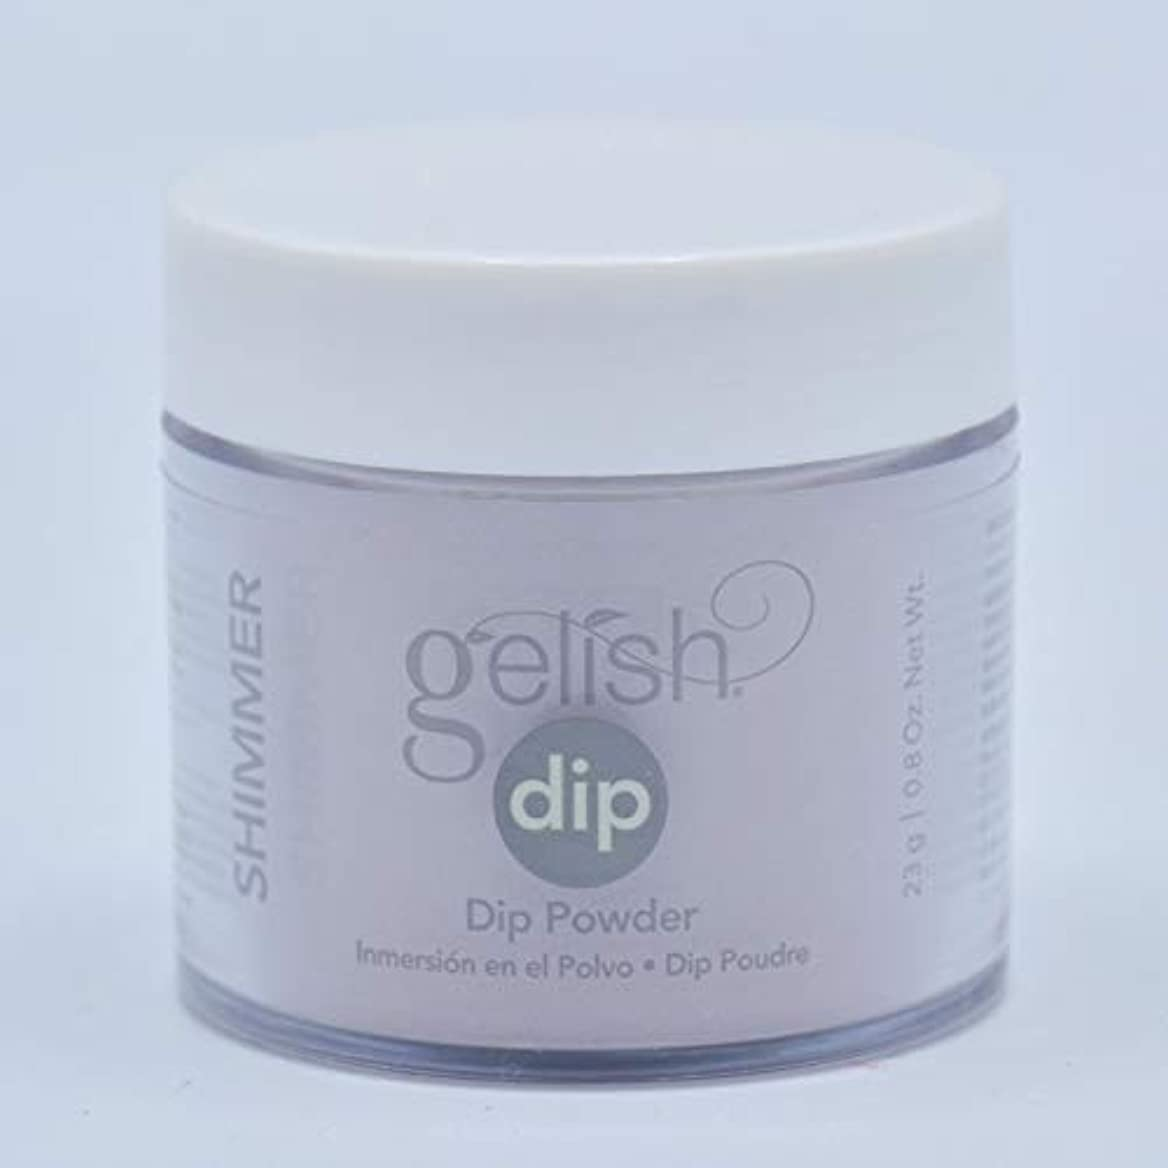 Harmony Gelish - Acrylic Dip Powder - From Rodeo to Rodeo Drive - 23g / 0.8oz